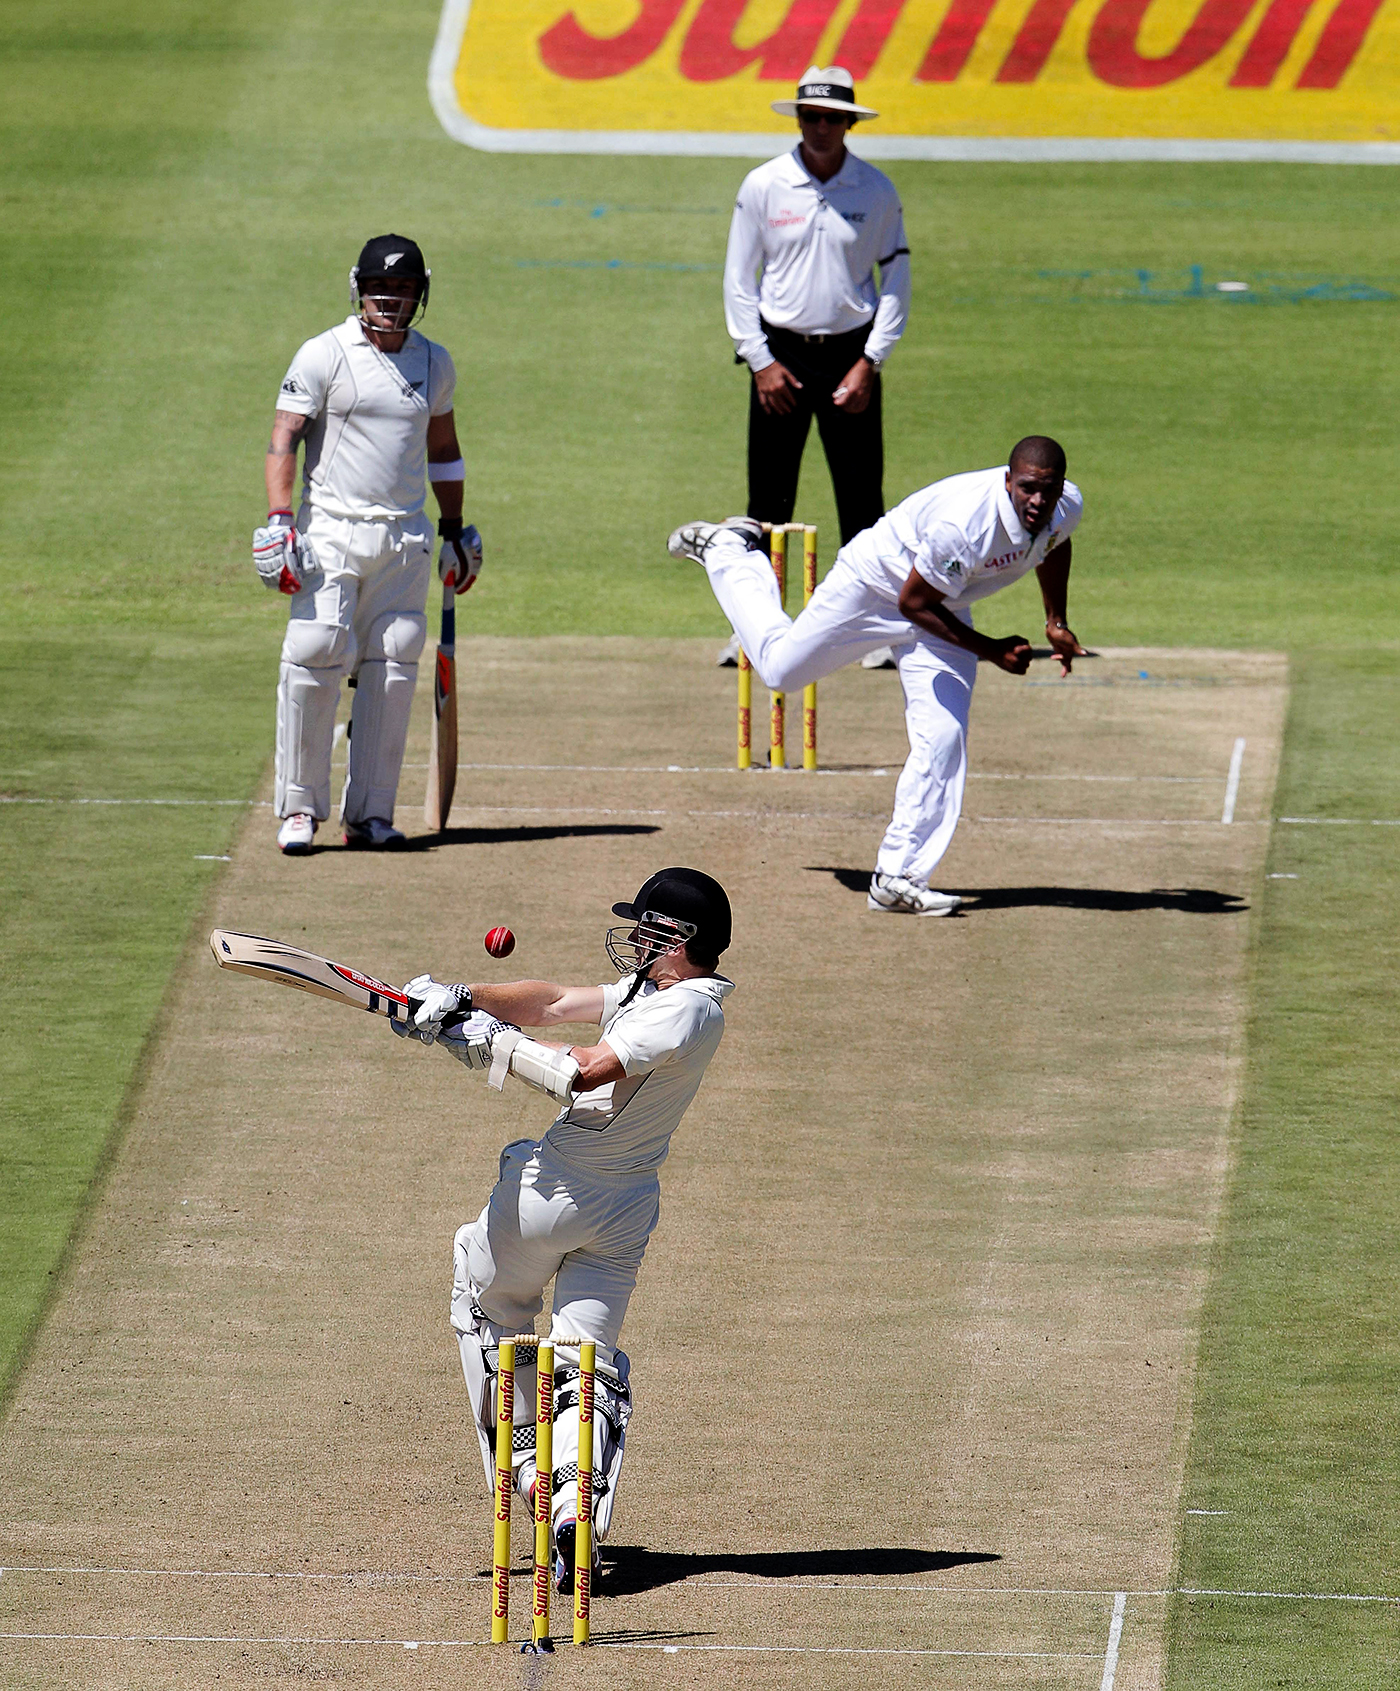 45 ways to say we suck: Vernon Philander was nearly unplayable in Cape Town in 2013, but the New Zealand leadership understood that it was time to look within themselves if they wanted to move past the rout